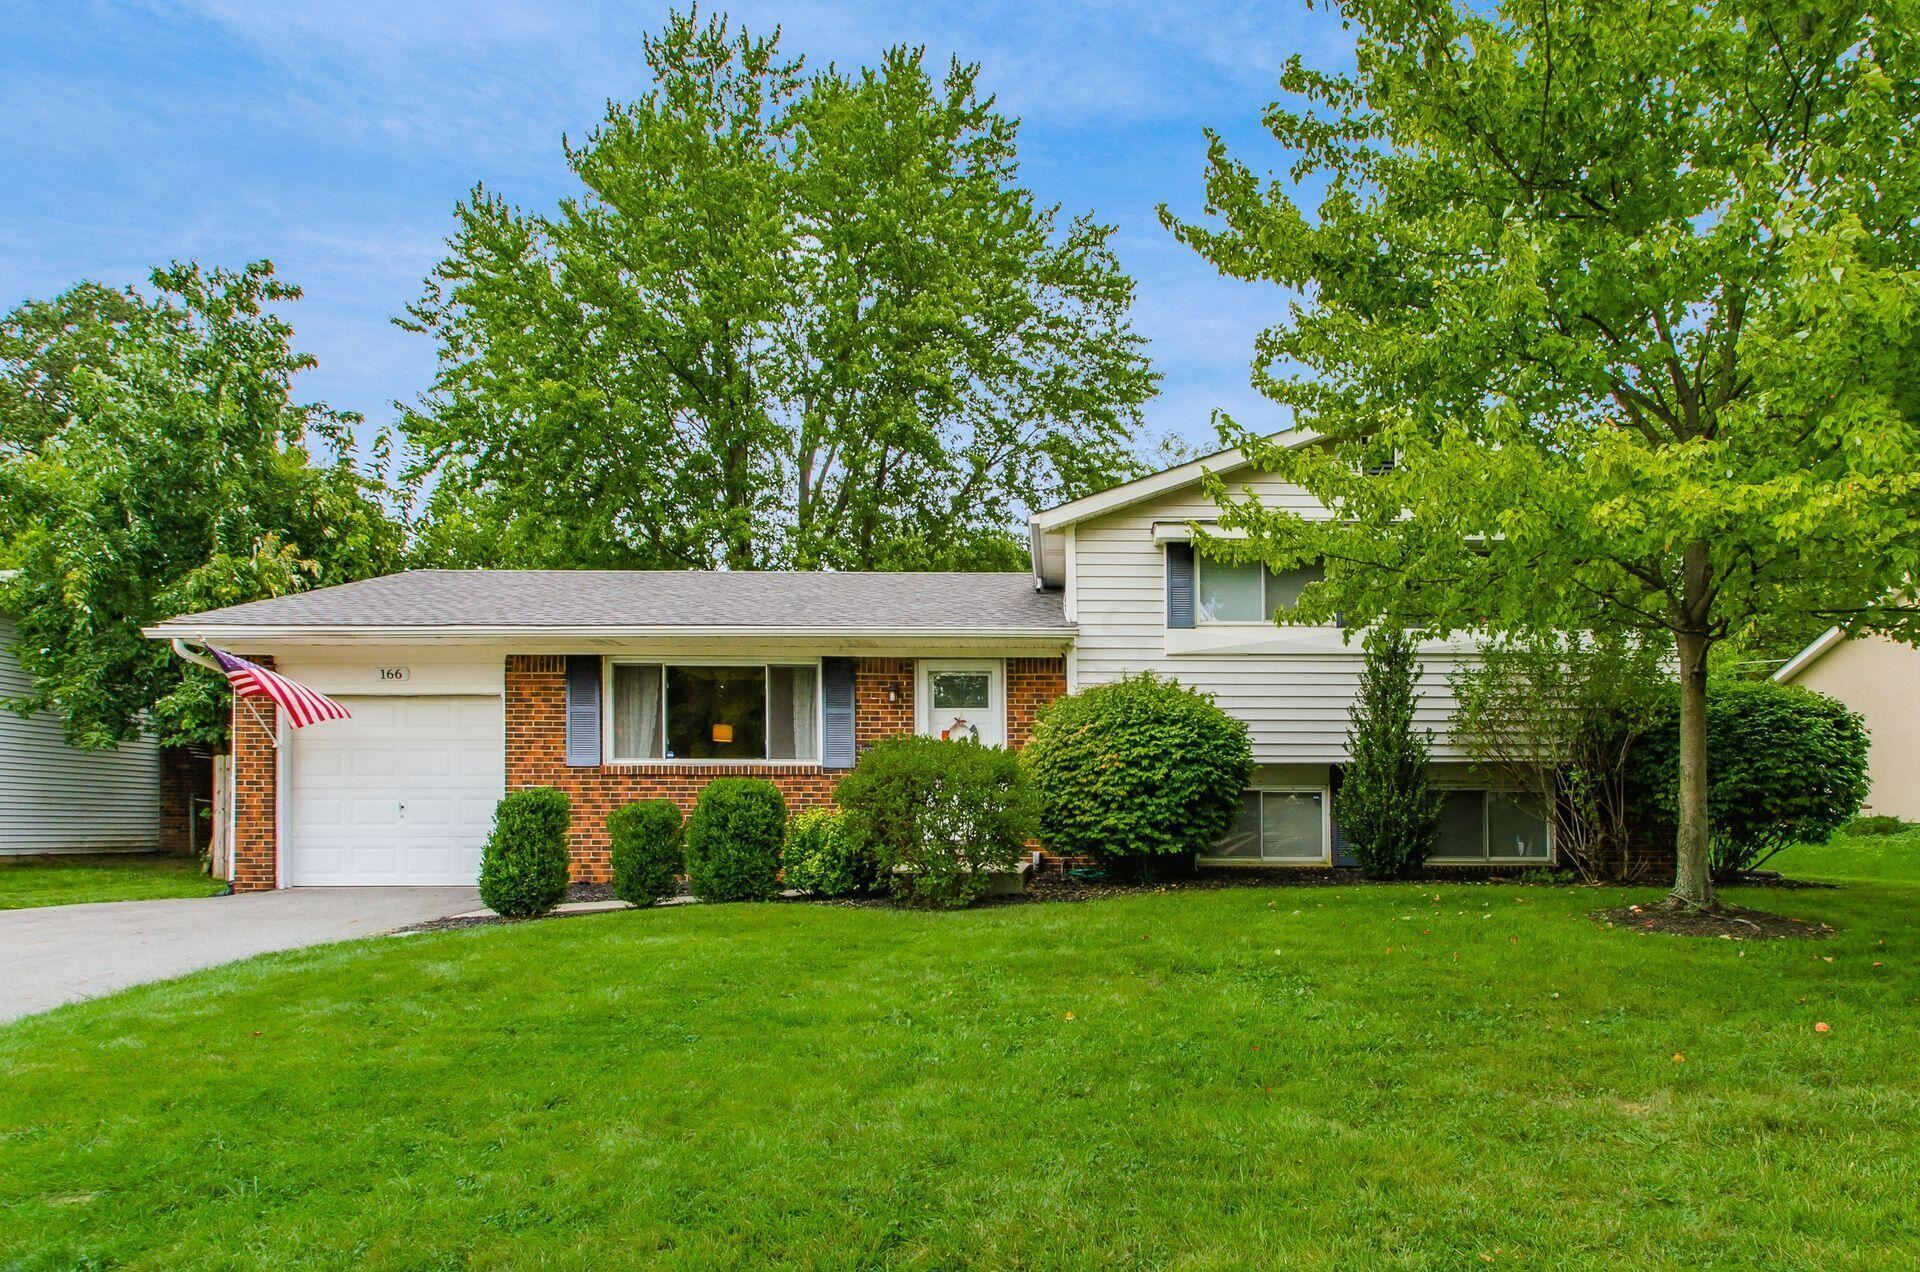 Photo of 166 Allview Road, Westerville, OH 43081 (MLS # 221040517)